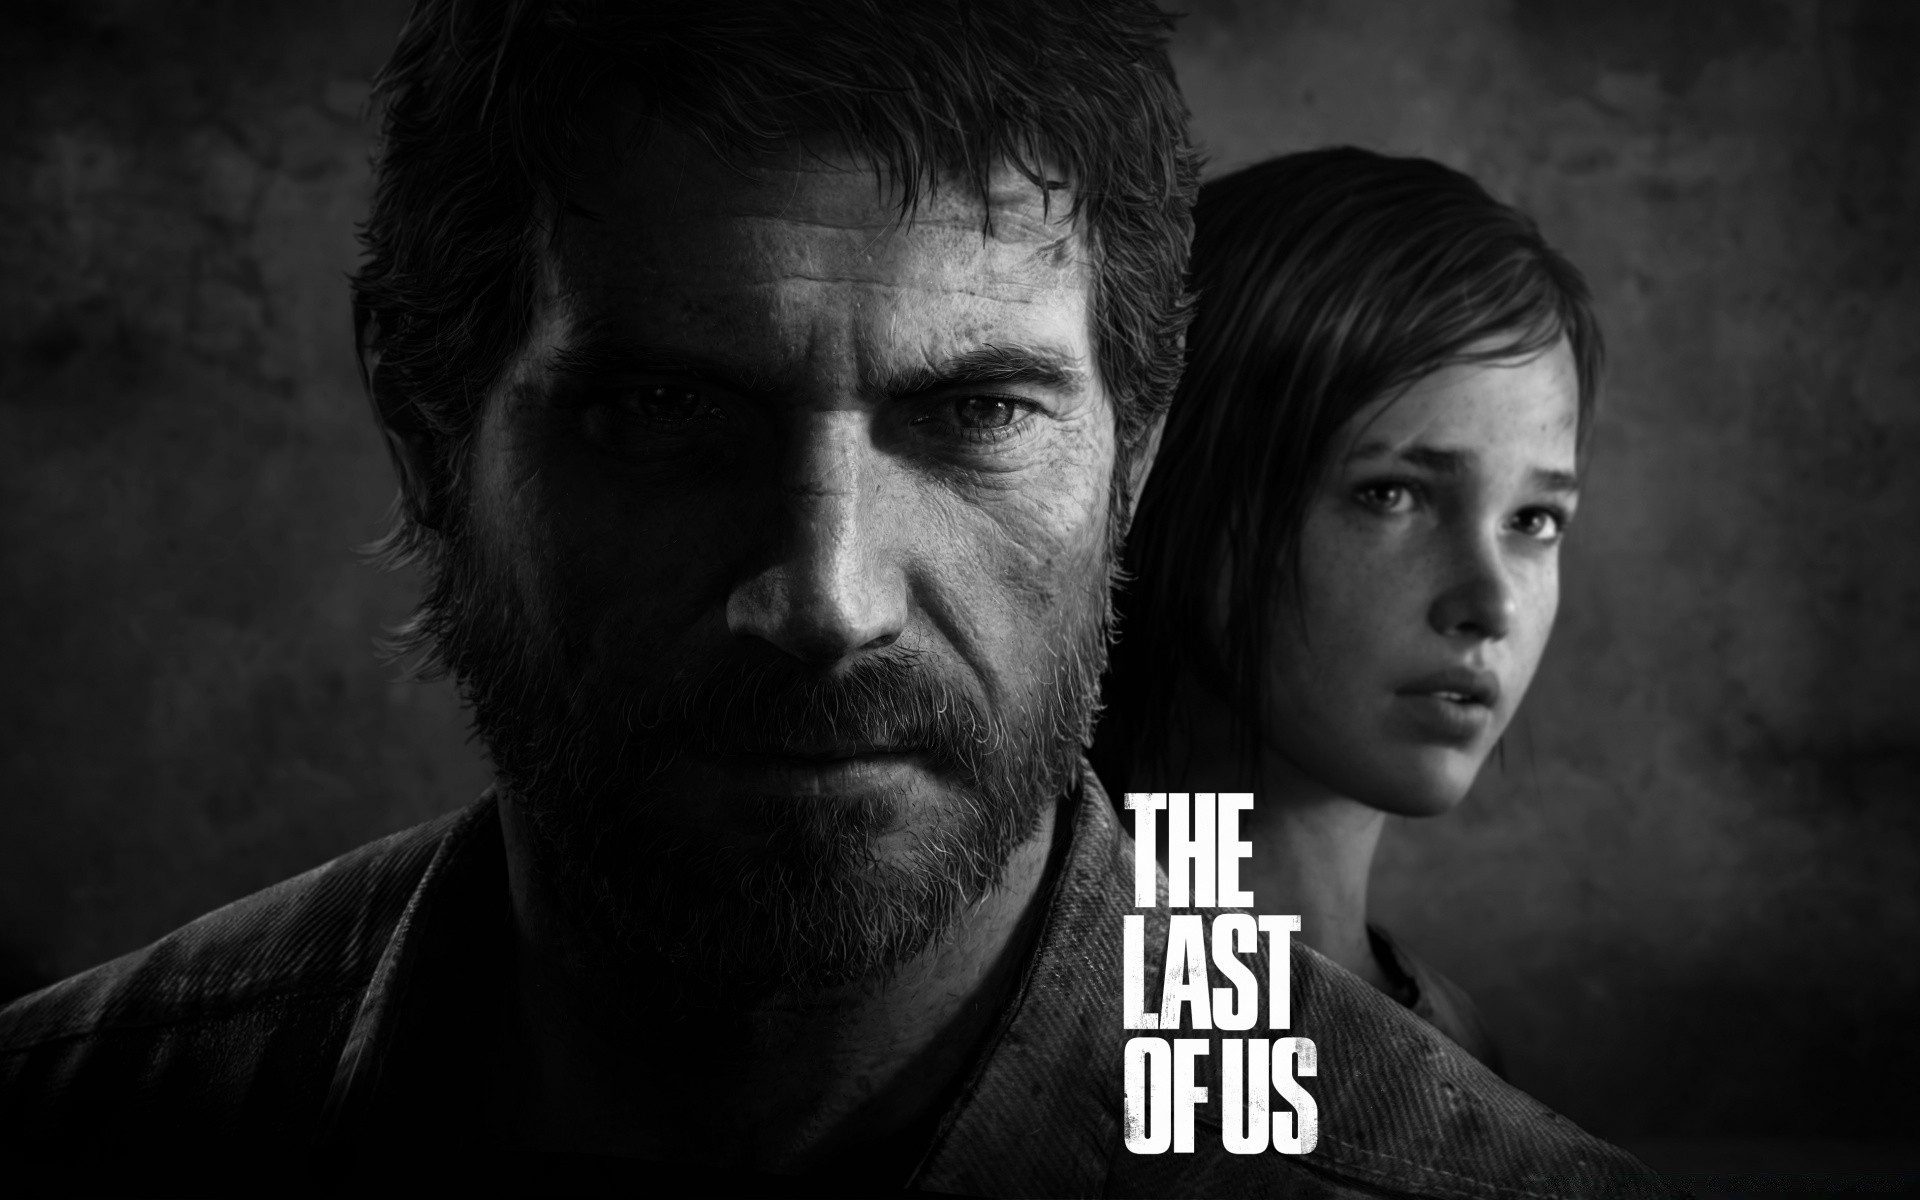 The Last Of Us Android Wallpapers